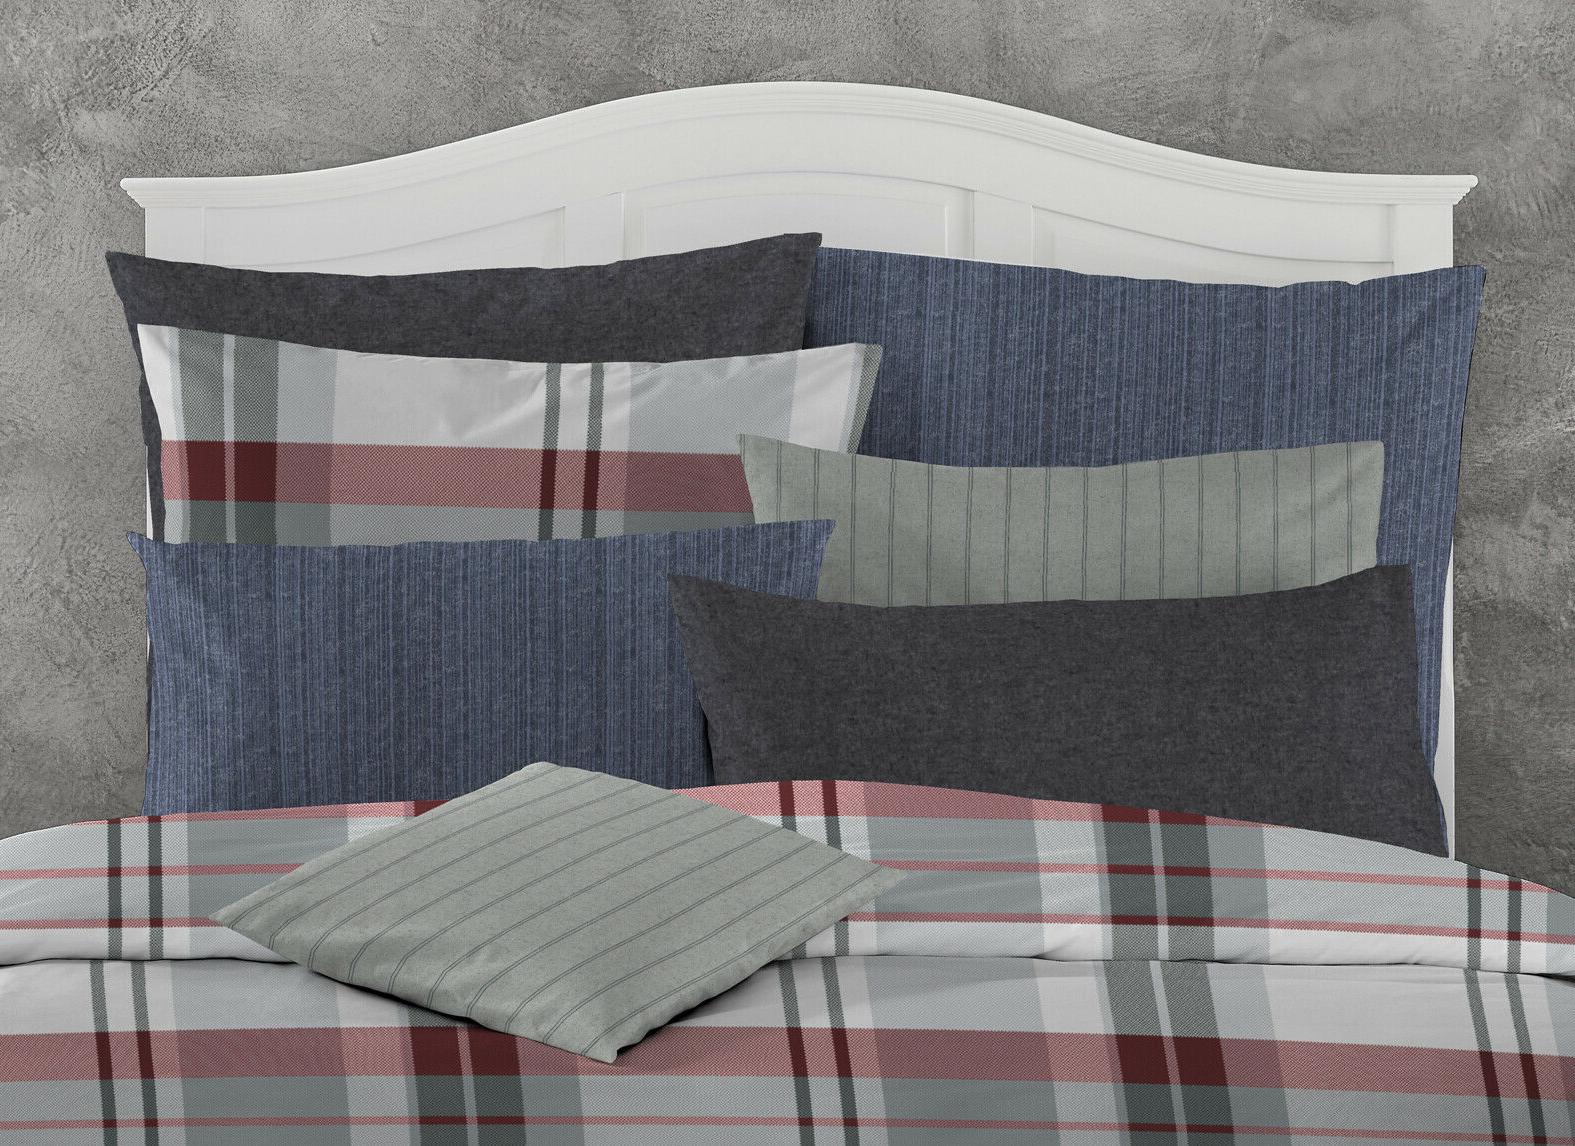 Dormisette Luxury Flannel Sheets & Set,